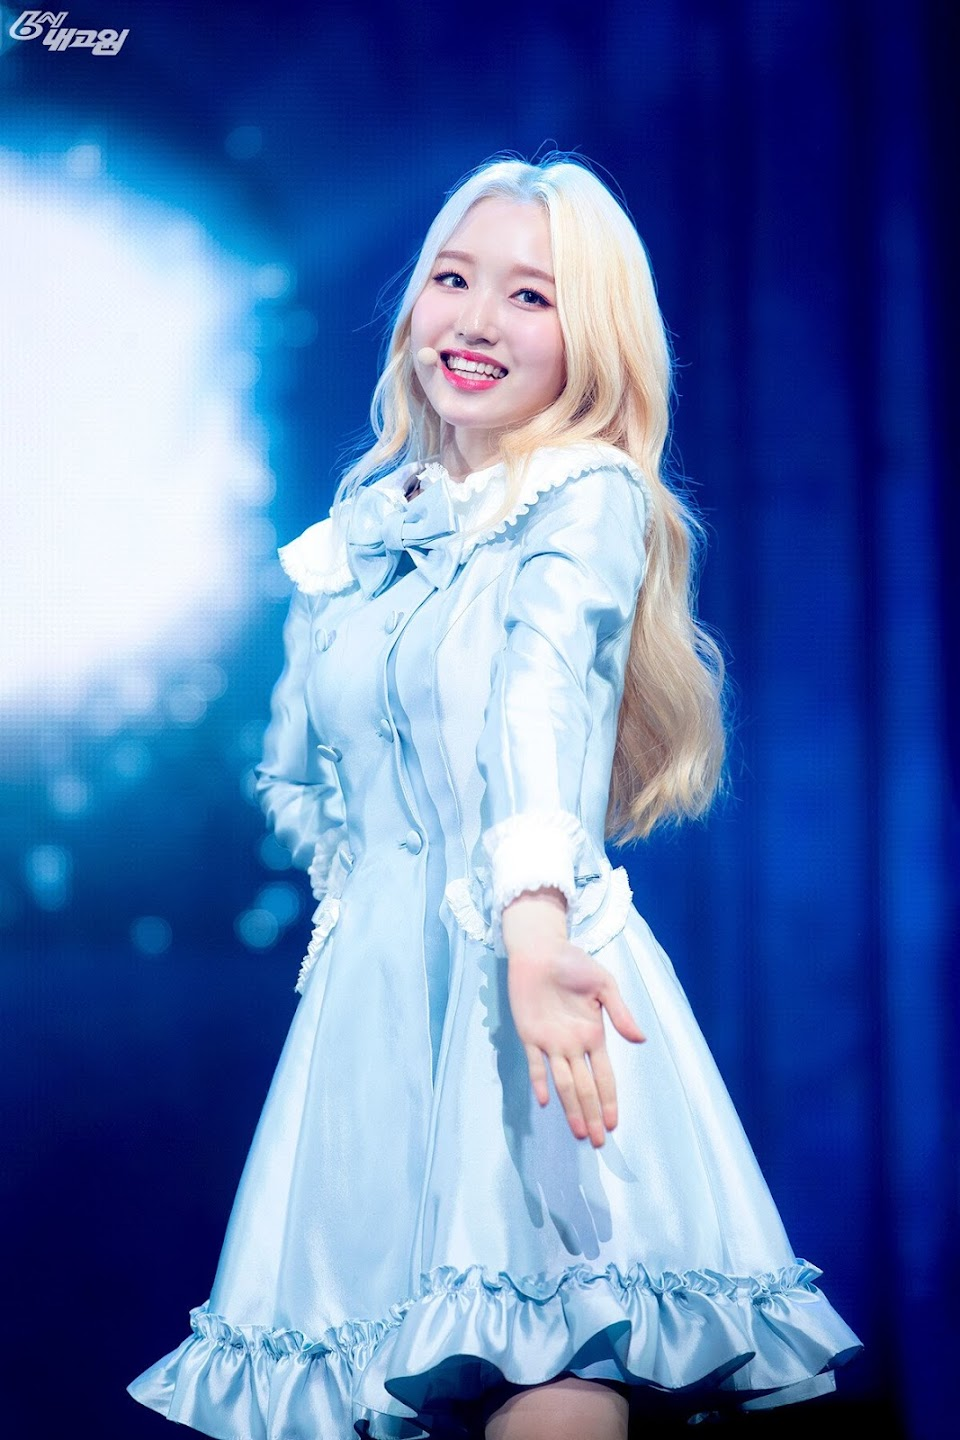 gowon4